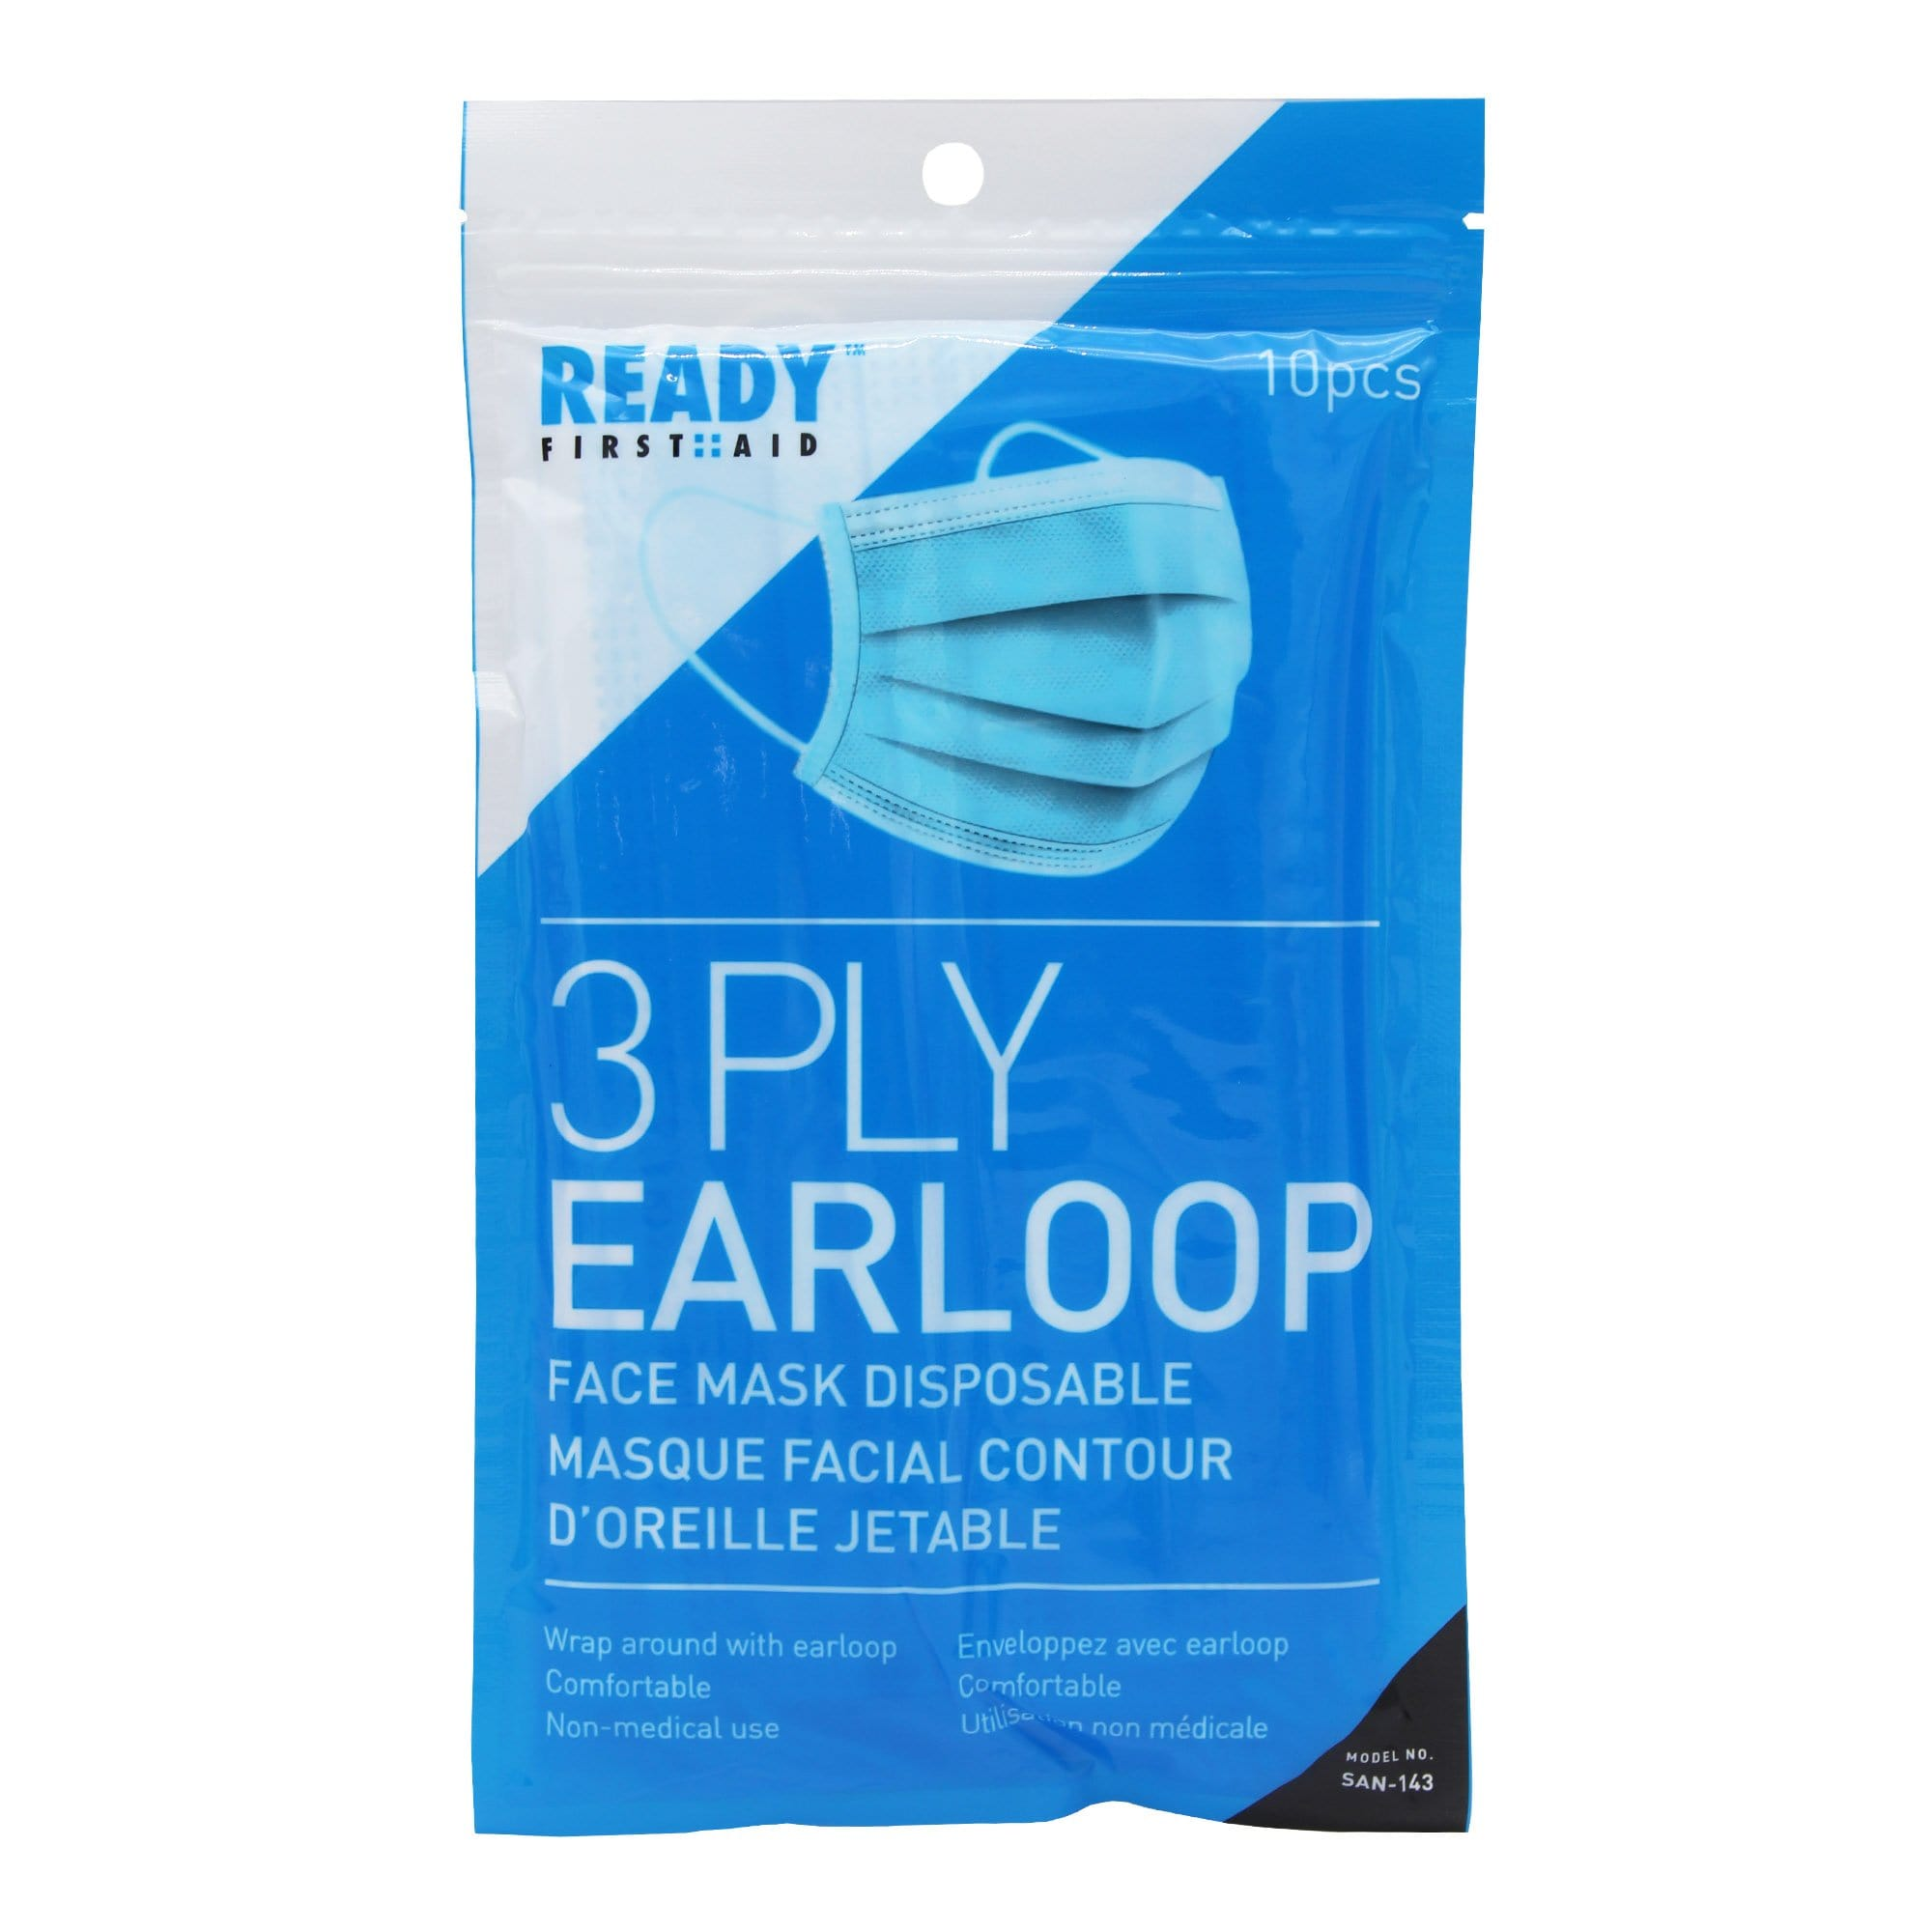 3-PLY Earloop Disposable Face Mask Pack of 10 - Ready First Aid